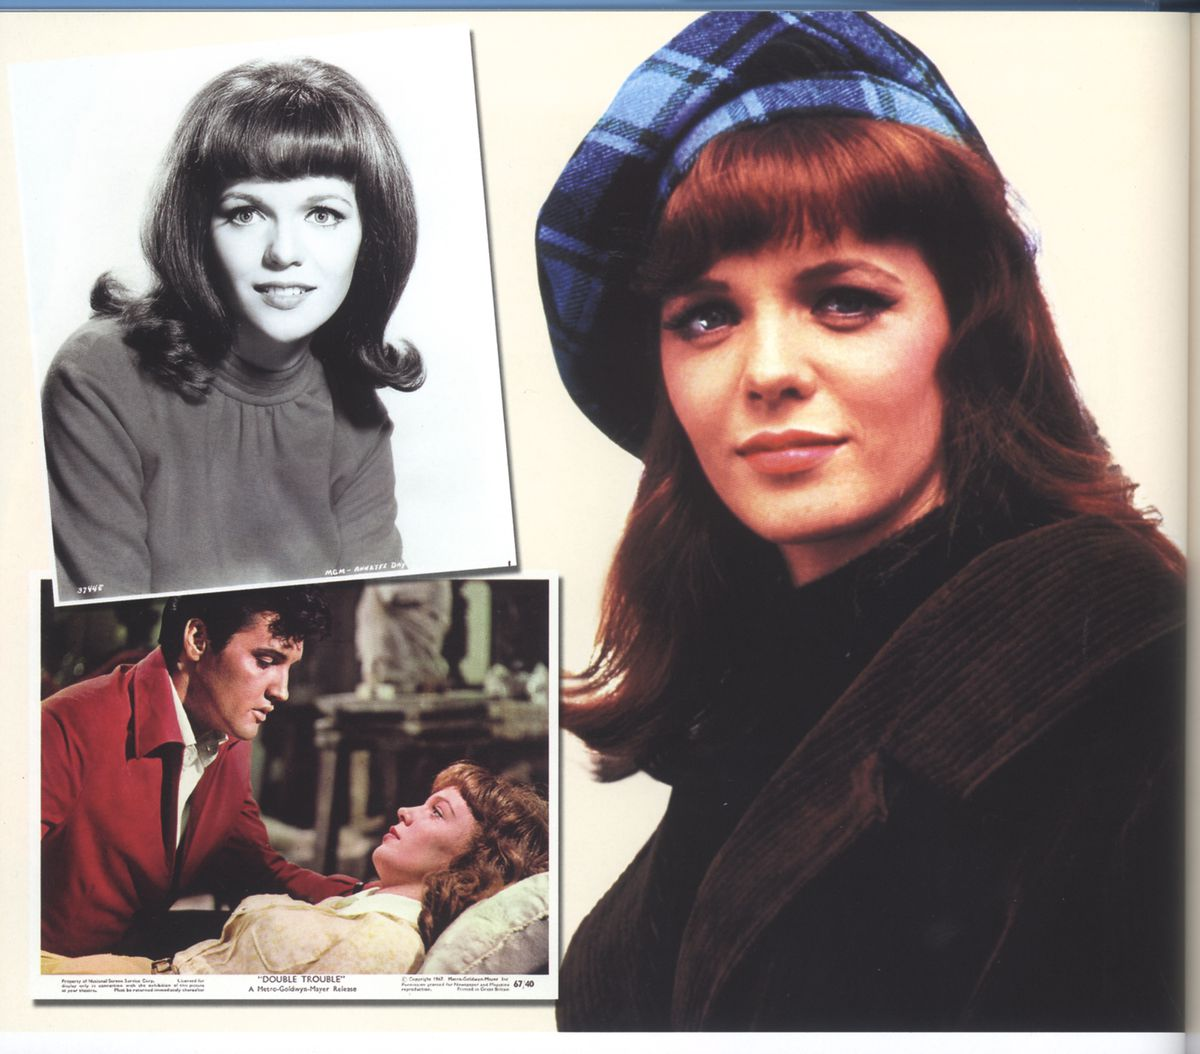 Annette as she was in Double Trouble